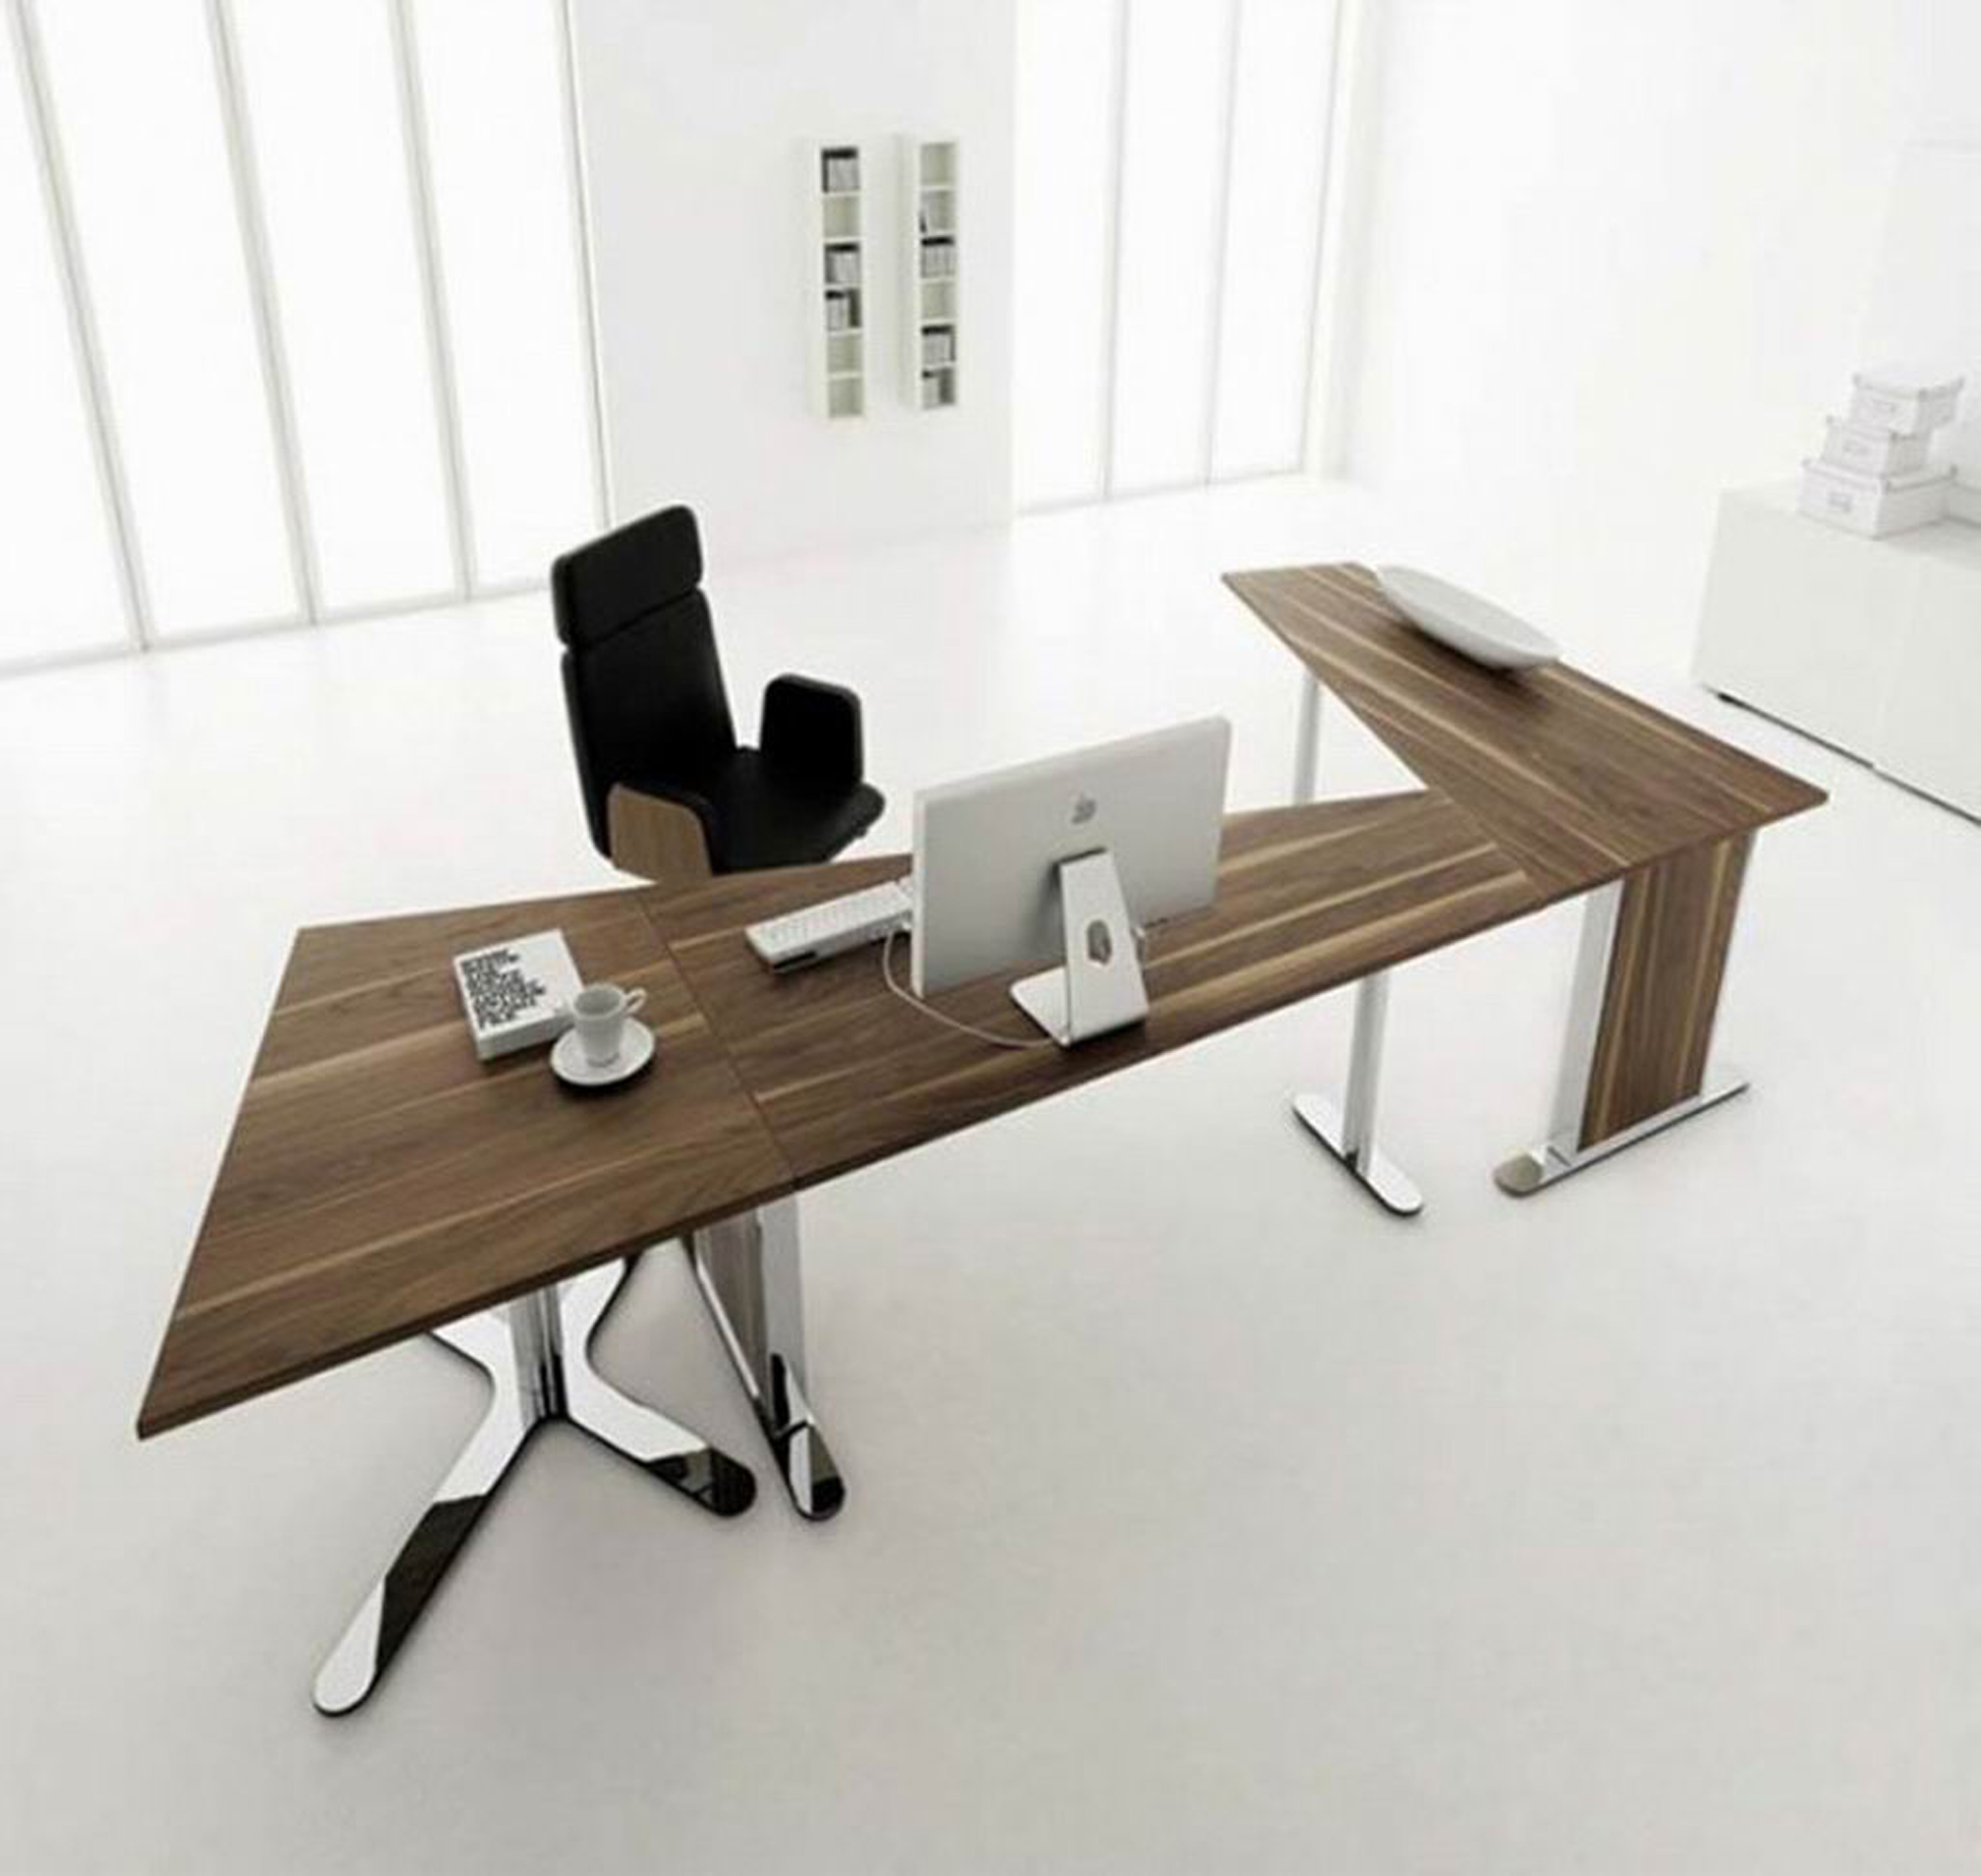 20 Of The Best Modern Home Office Ideas: Best Modern Home Office Decorating Ideas #14089